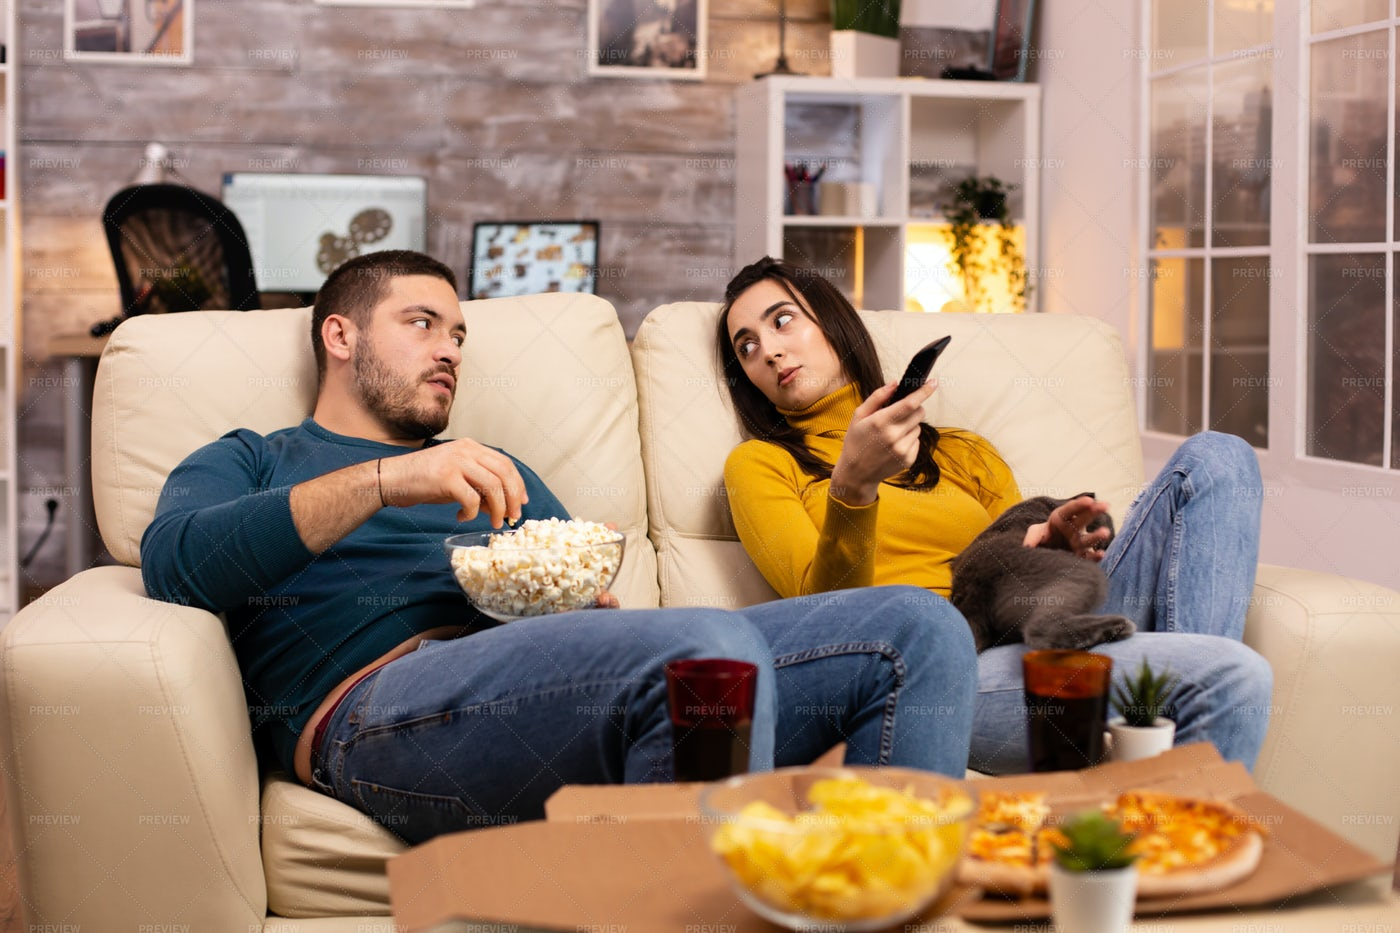 Deciding What To Watch: Stock Photos